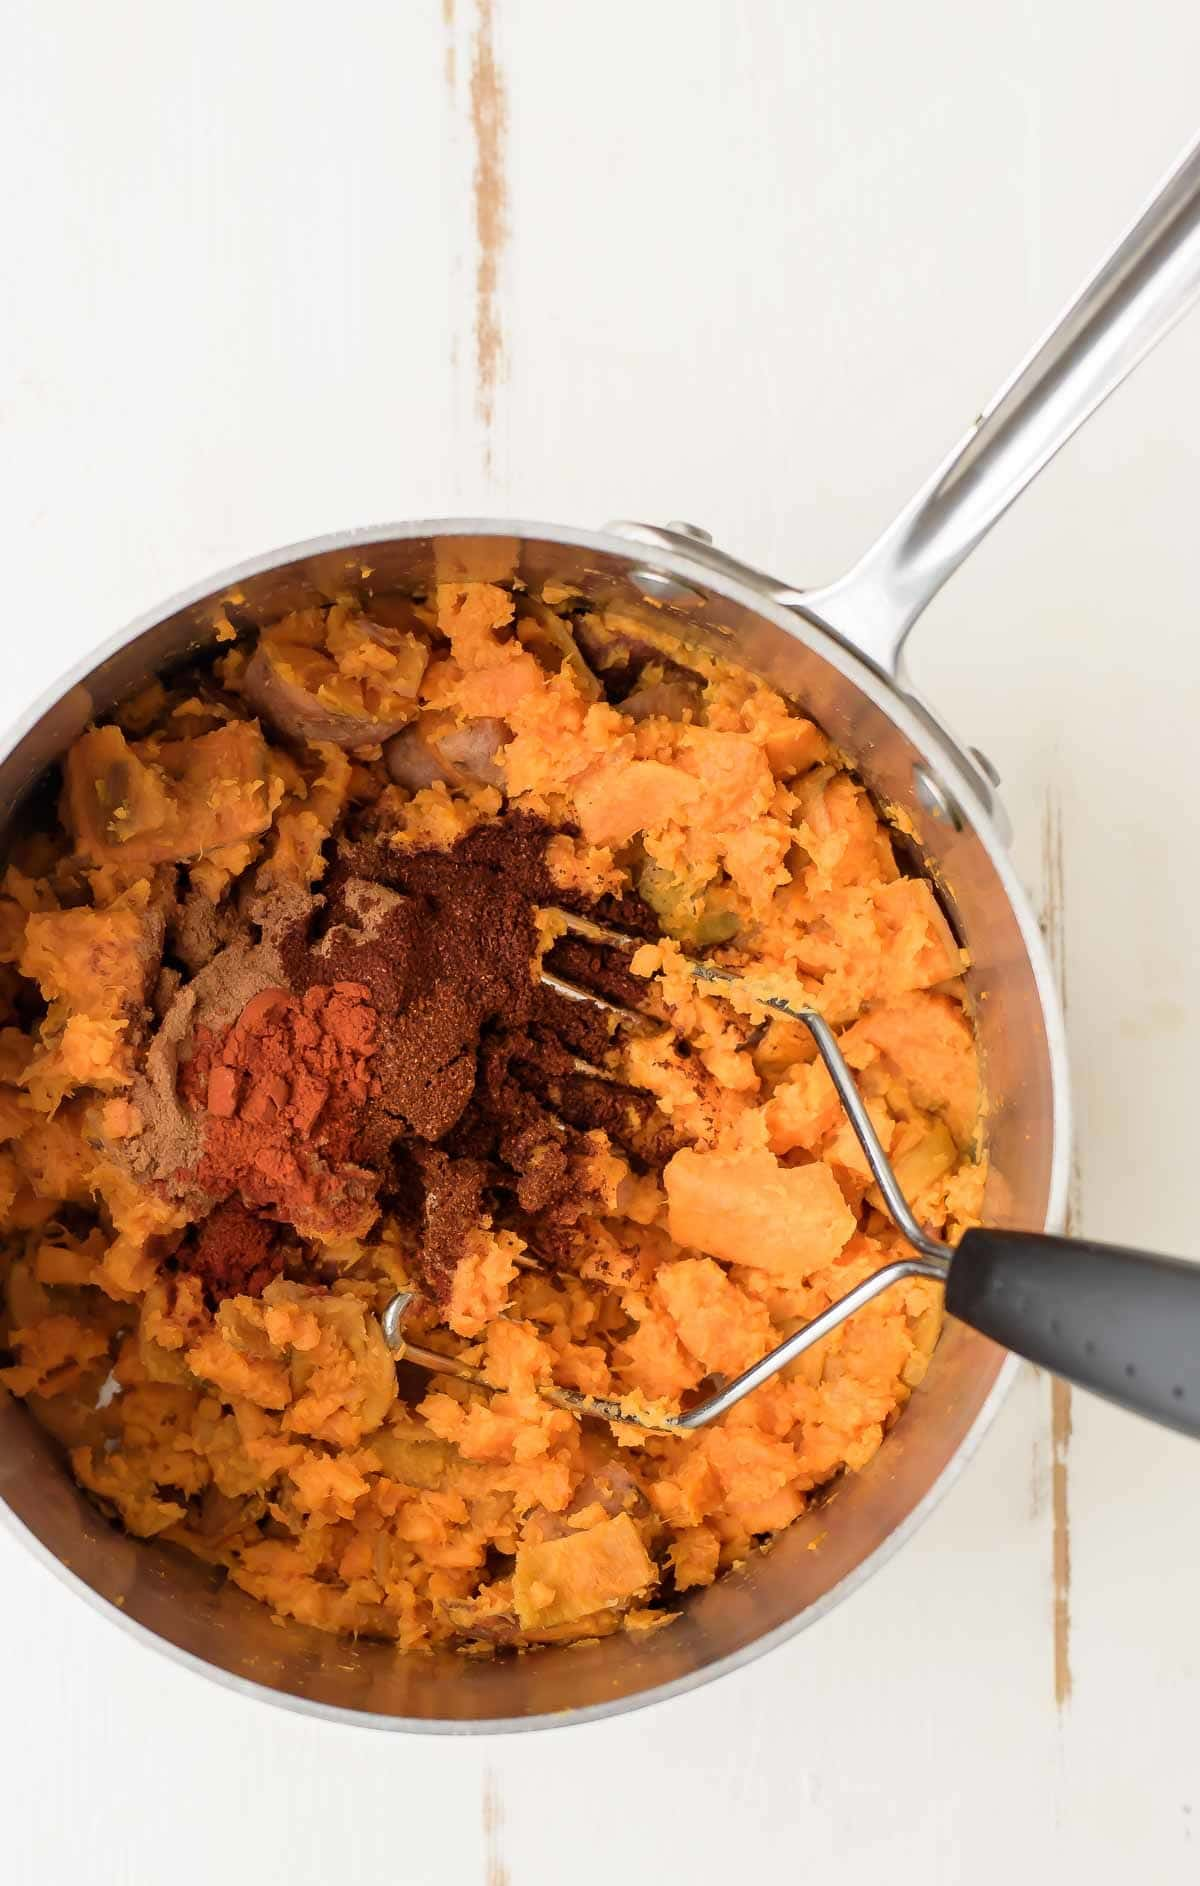 mashing sweet potatoes with spices to make vegan sweet potato quesadillas